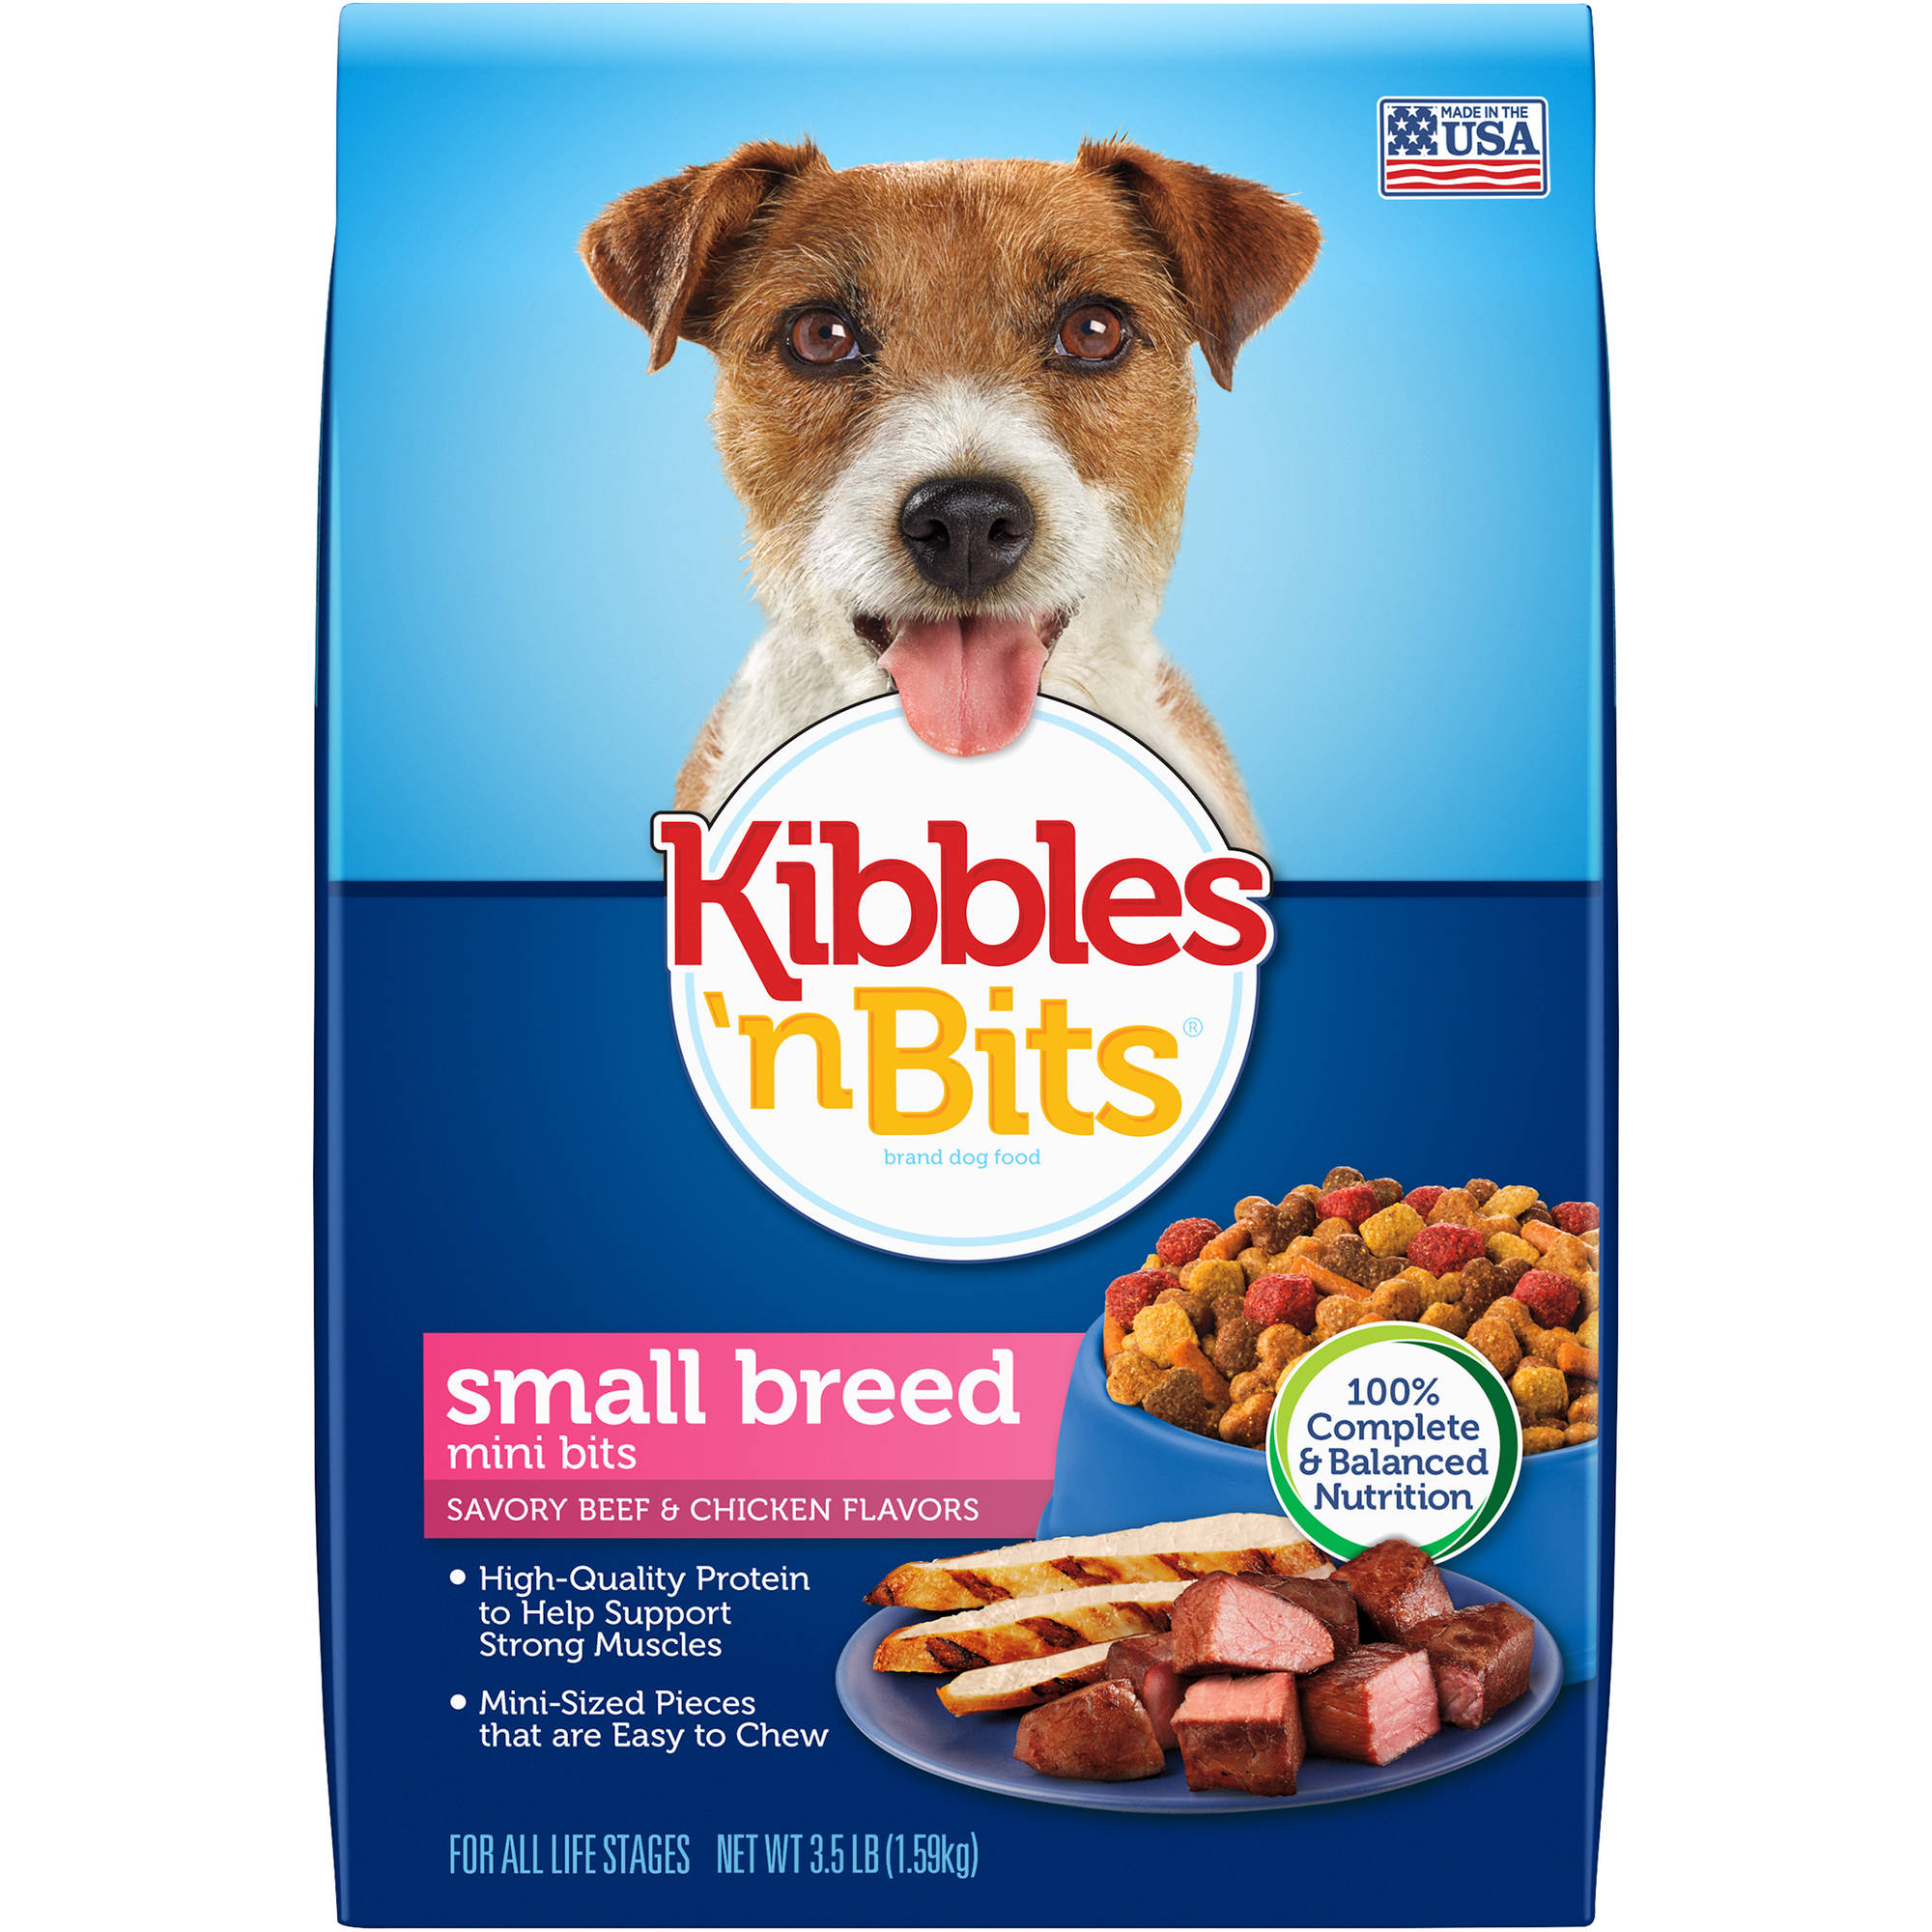 Kibbles 'n Bits Small Breed Mini Bits Savory Beef & Chicken Flavor Dry Dog Food, 3.5-Pound